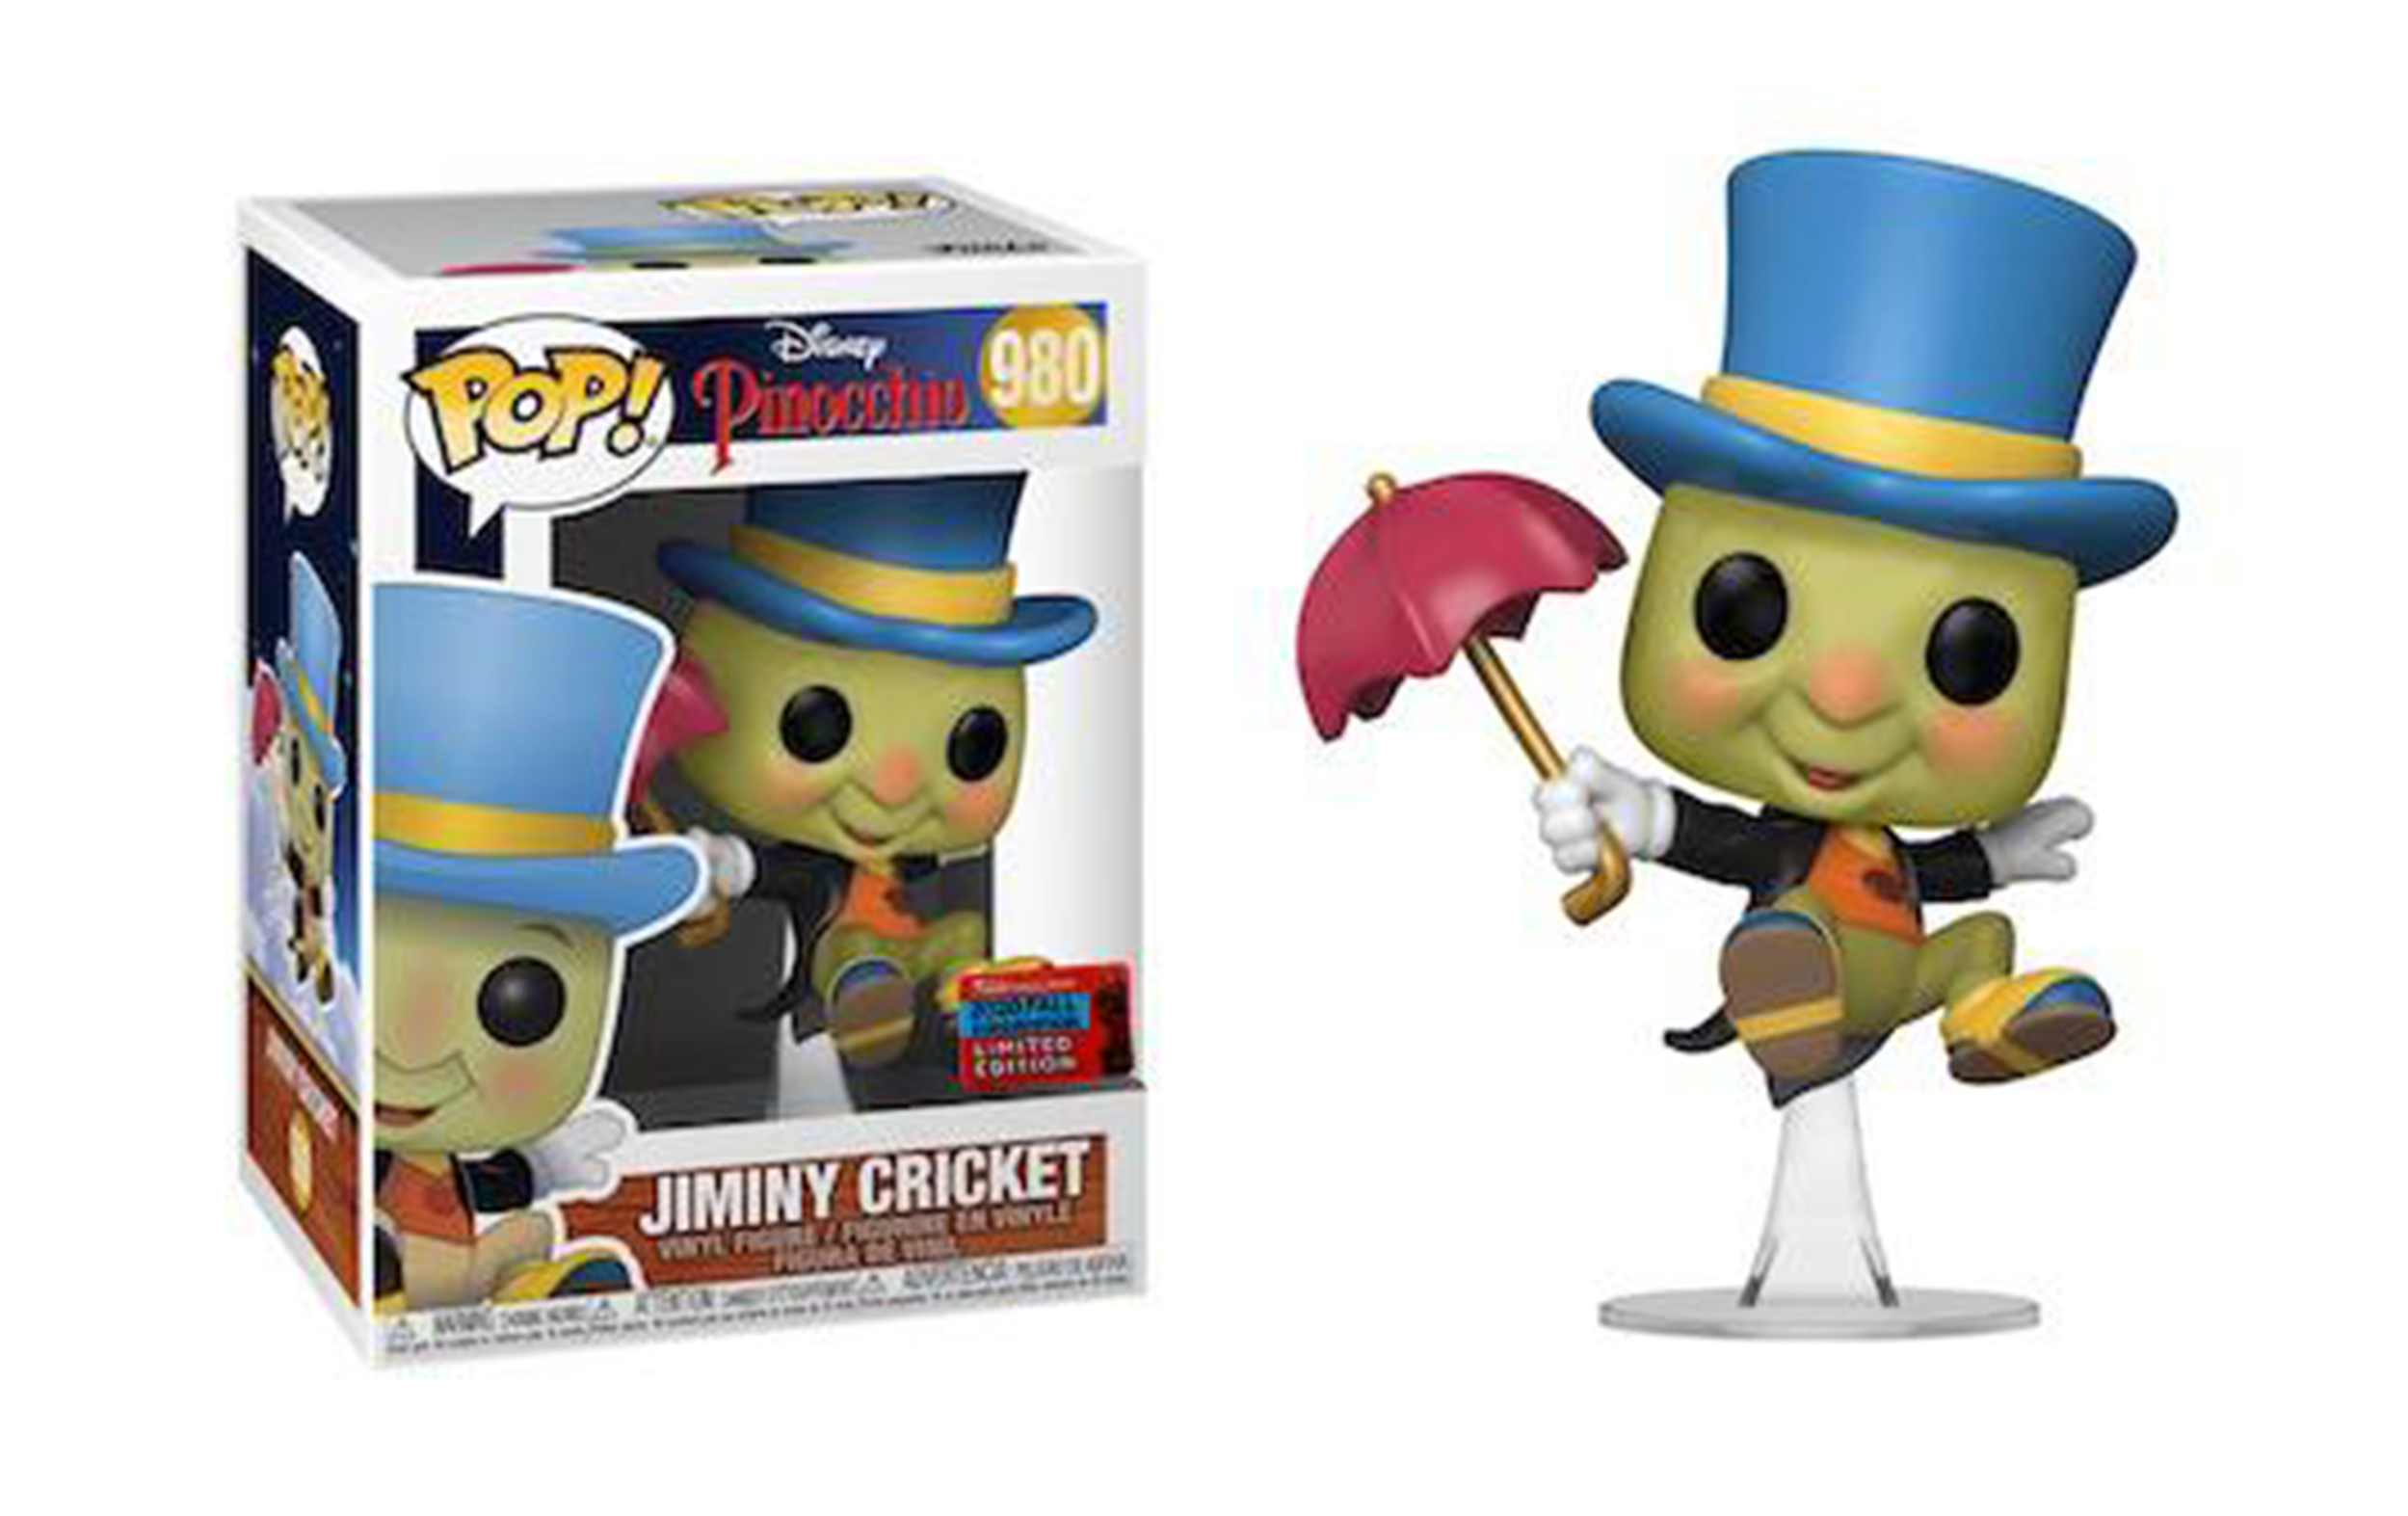 Disney Pinocchio Jiminy Cricket Fall Convention 2020 980 Funko POP Vinyl Figure